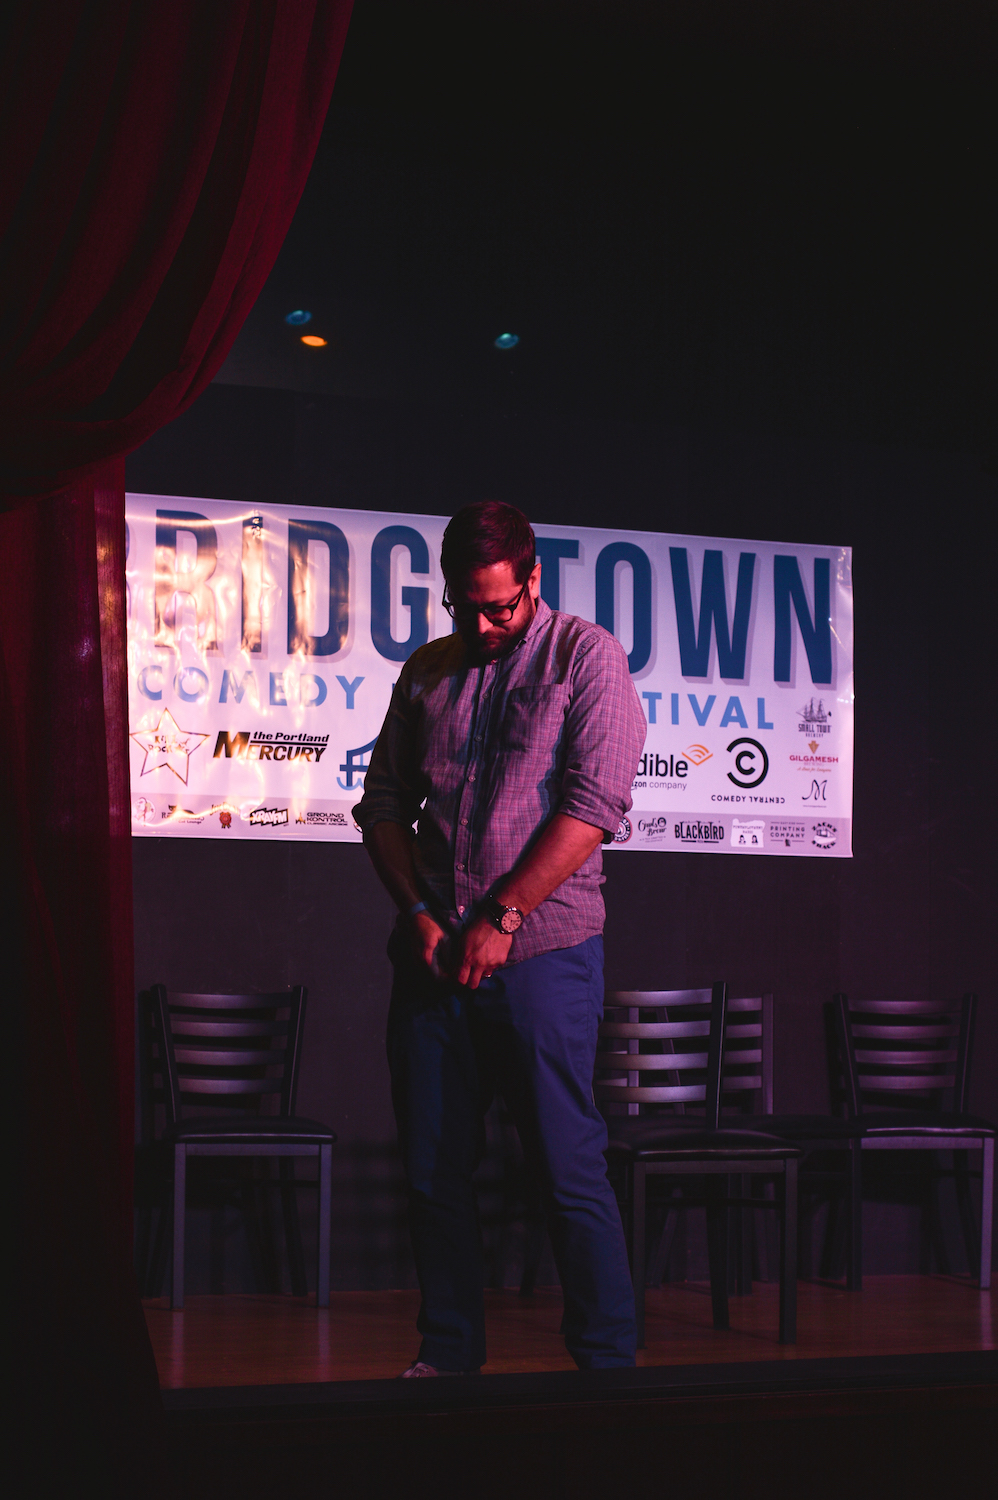 Cole Stratton at Theme Park at Bridgetown Comedy Festival, June 4, 2016. Photo by Deira Bowie.